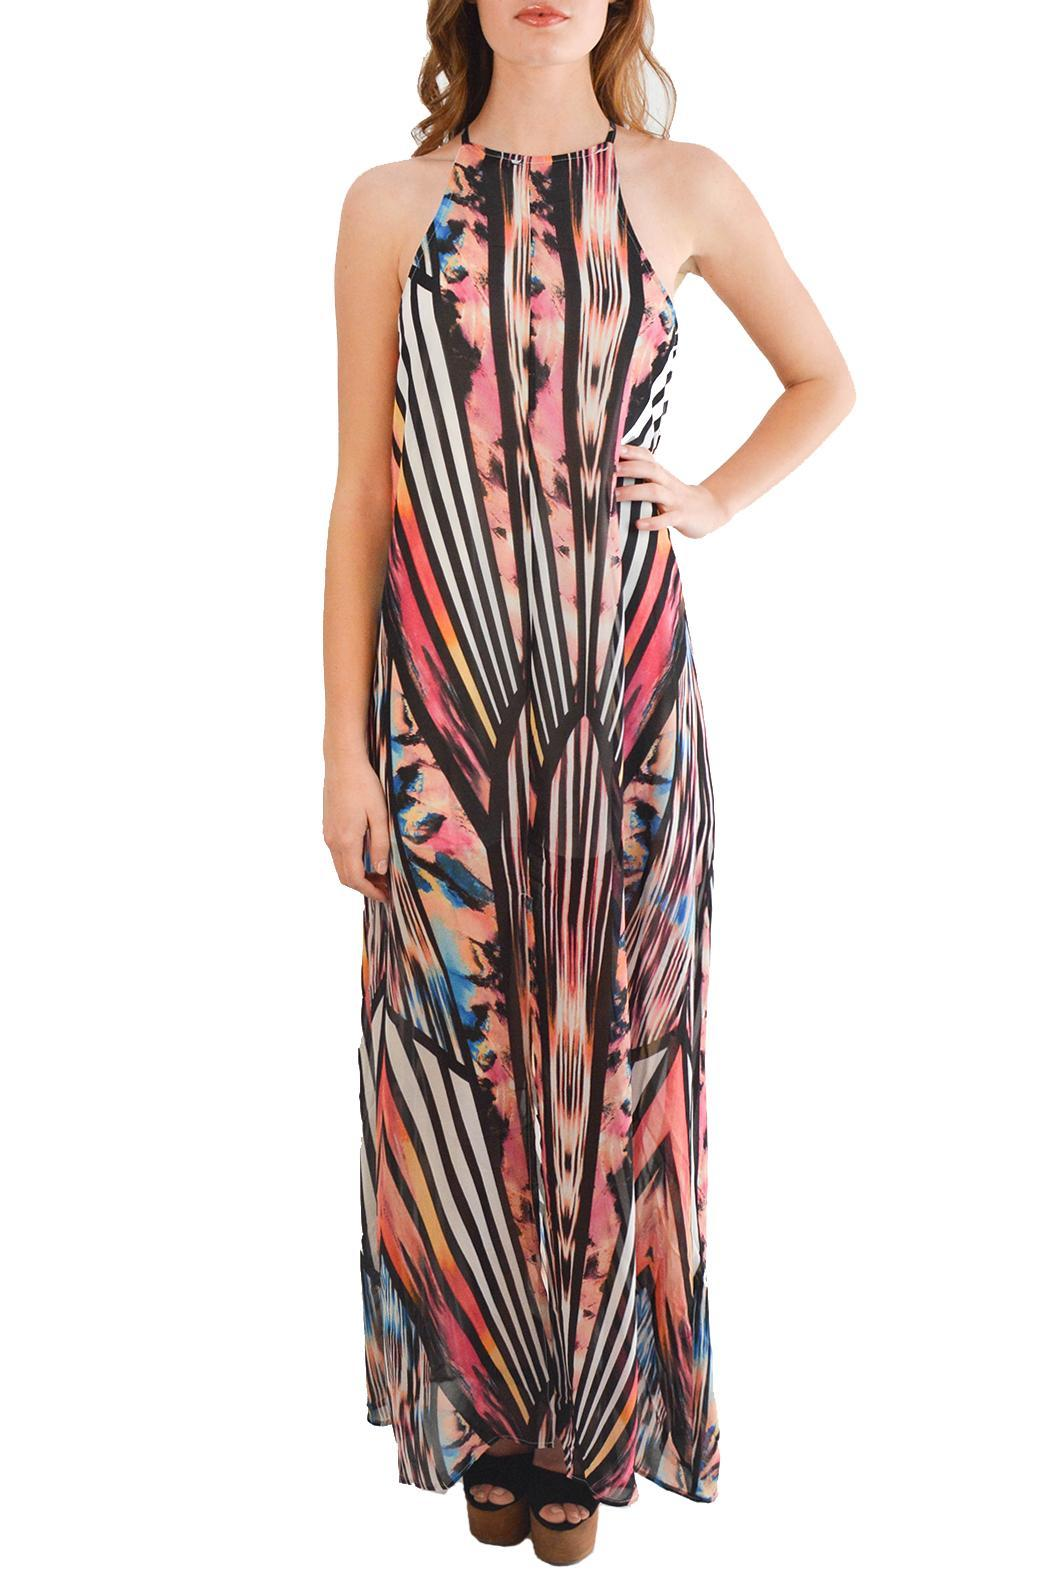 Alana Ferr Atelier Graphic Maxi Dress - Main Image